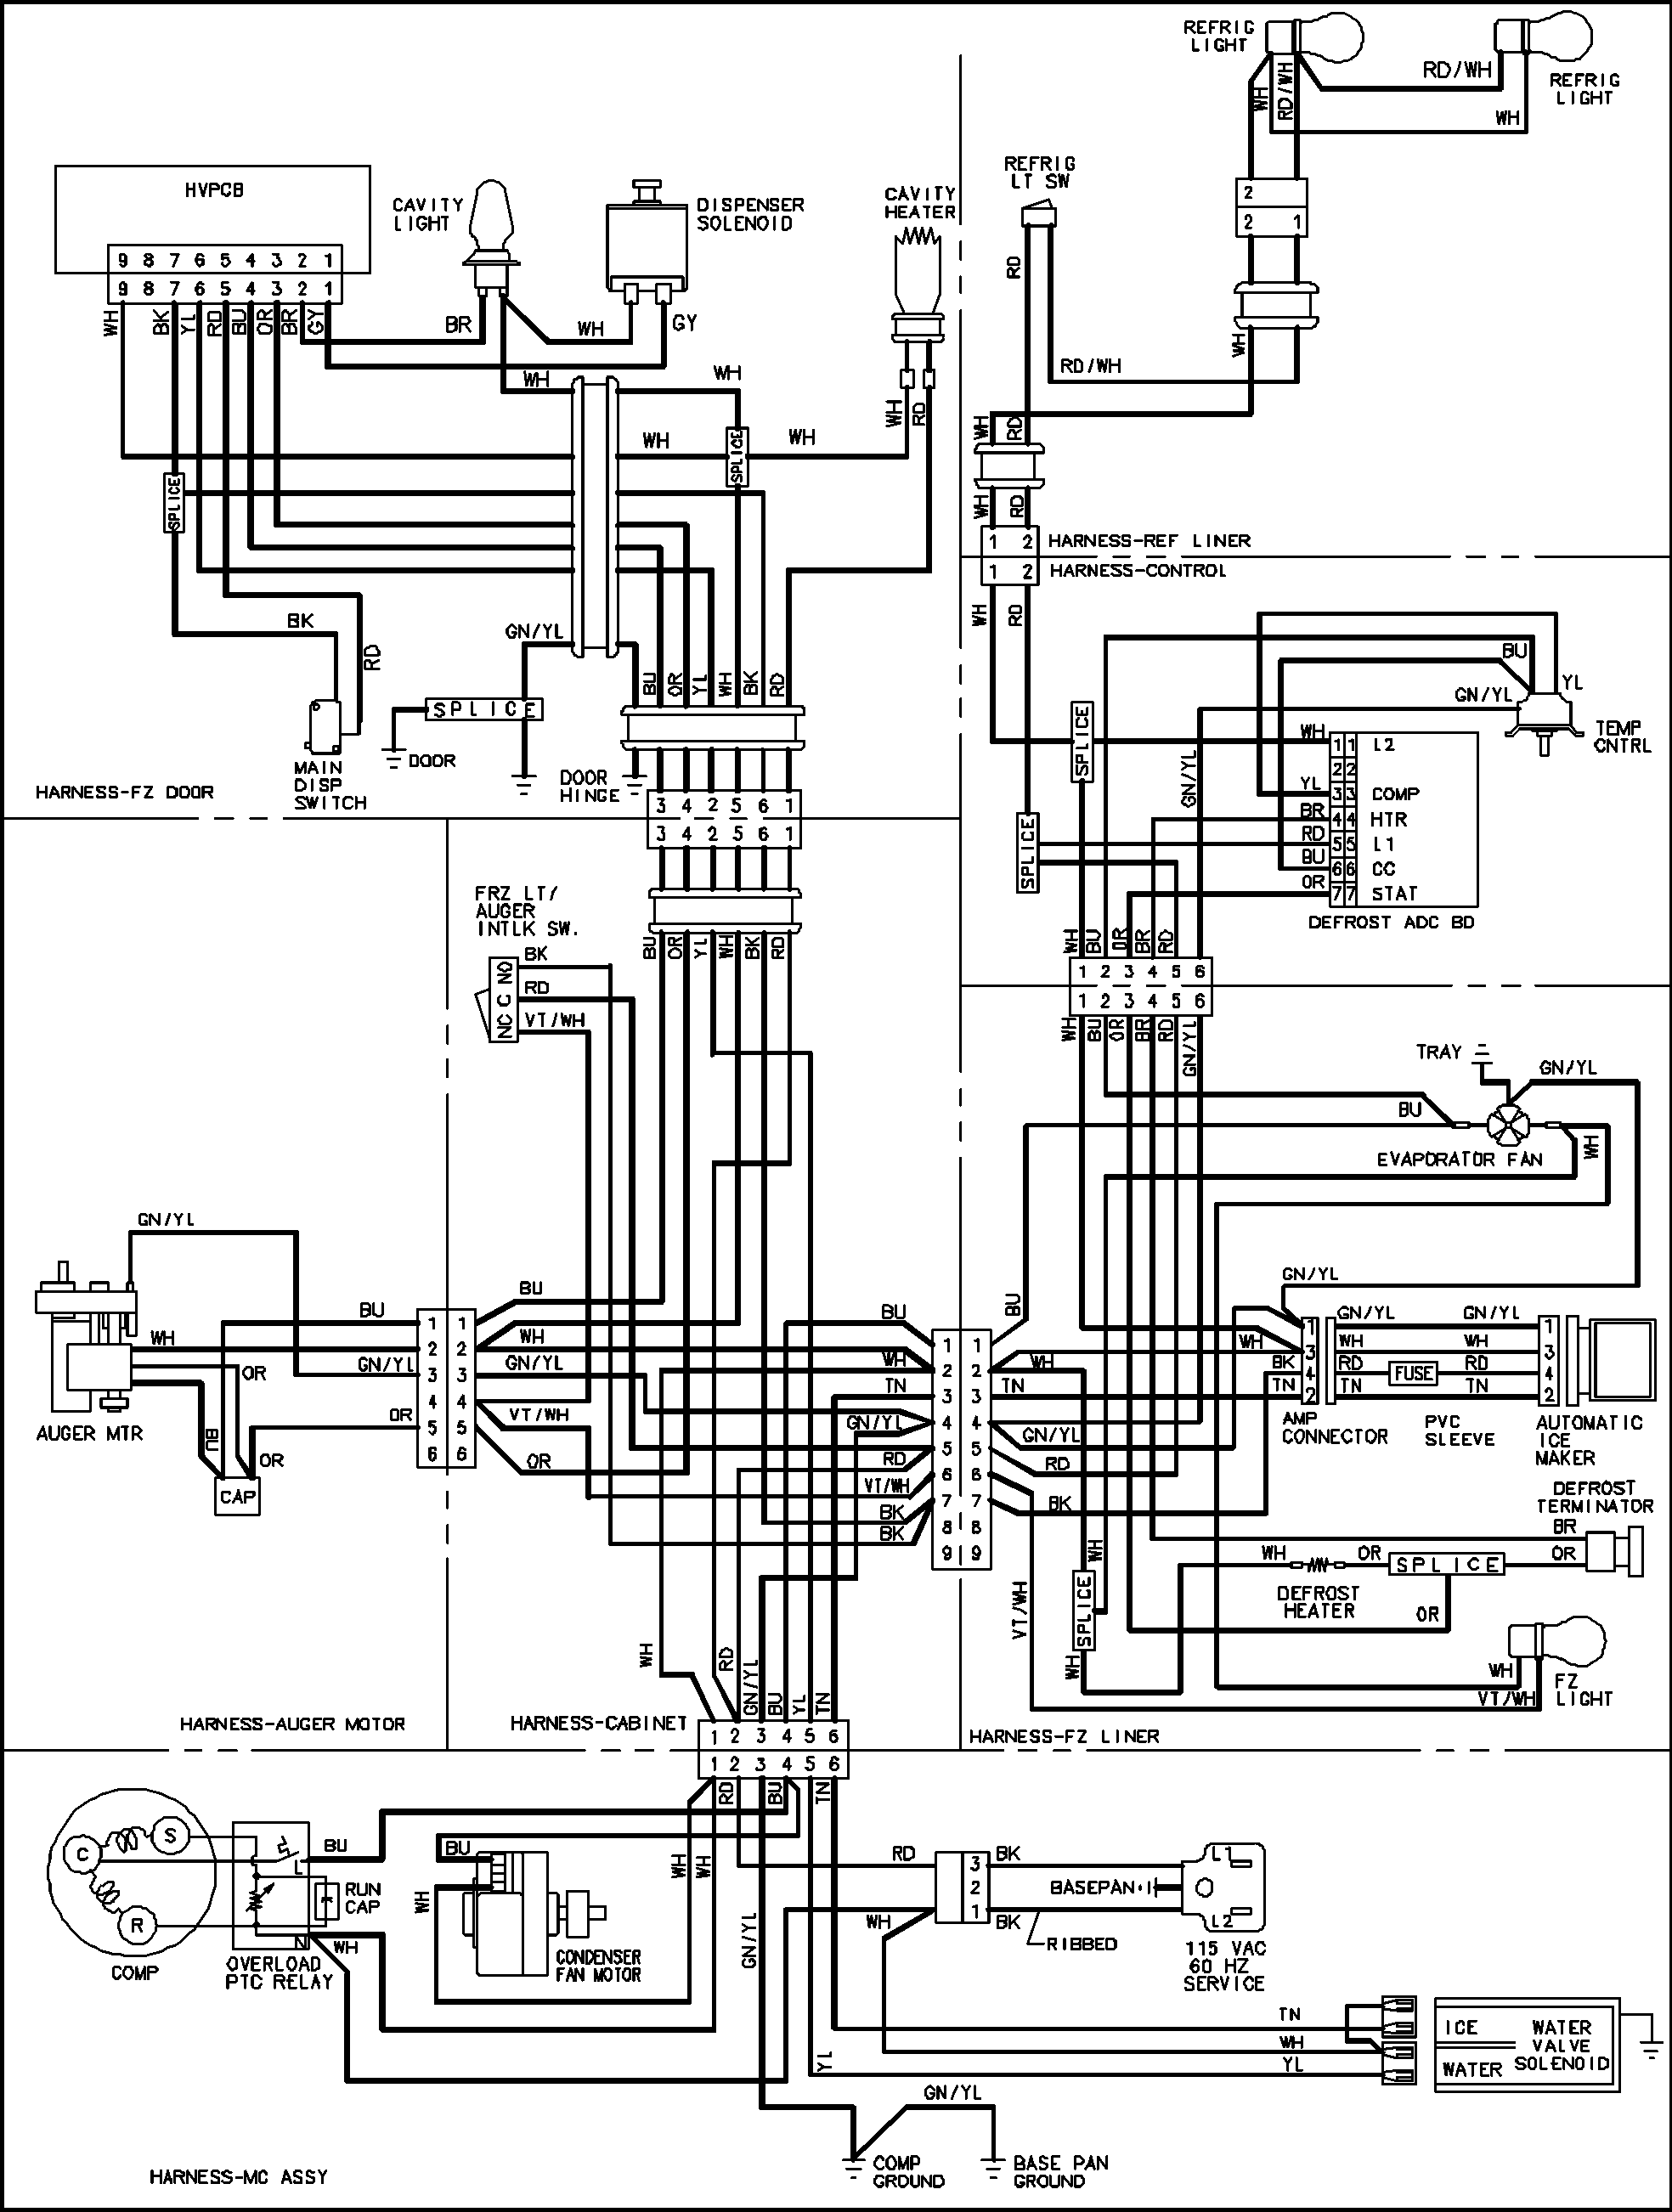 Industrial Refrigeration Compressor Wiring Diagrams